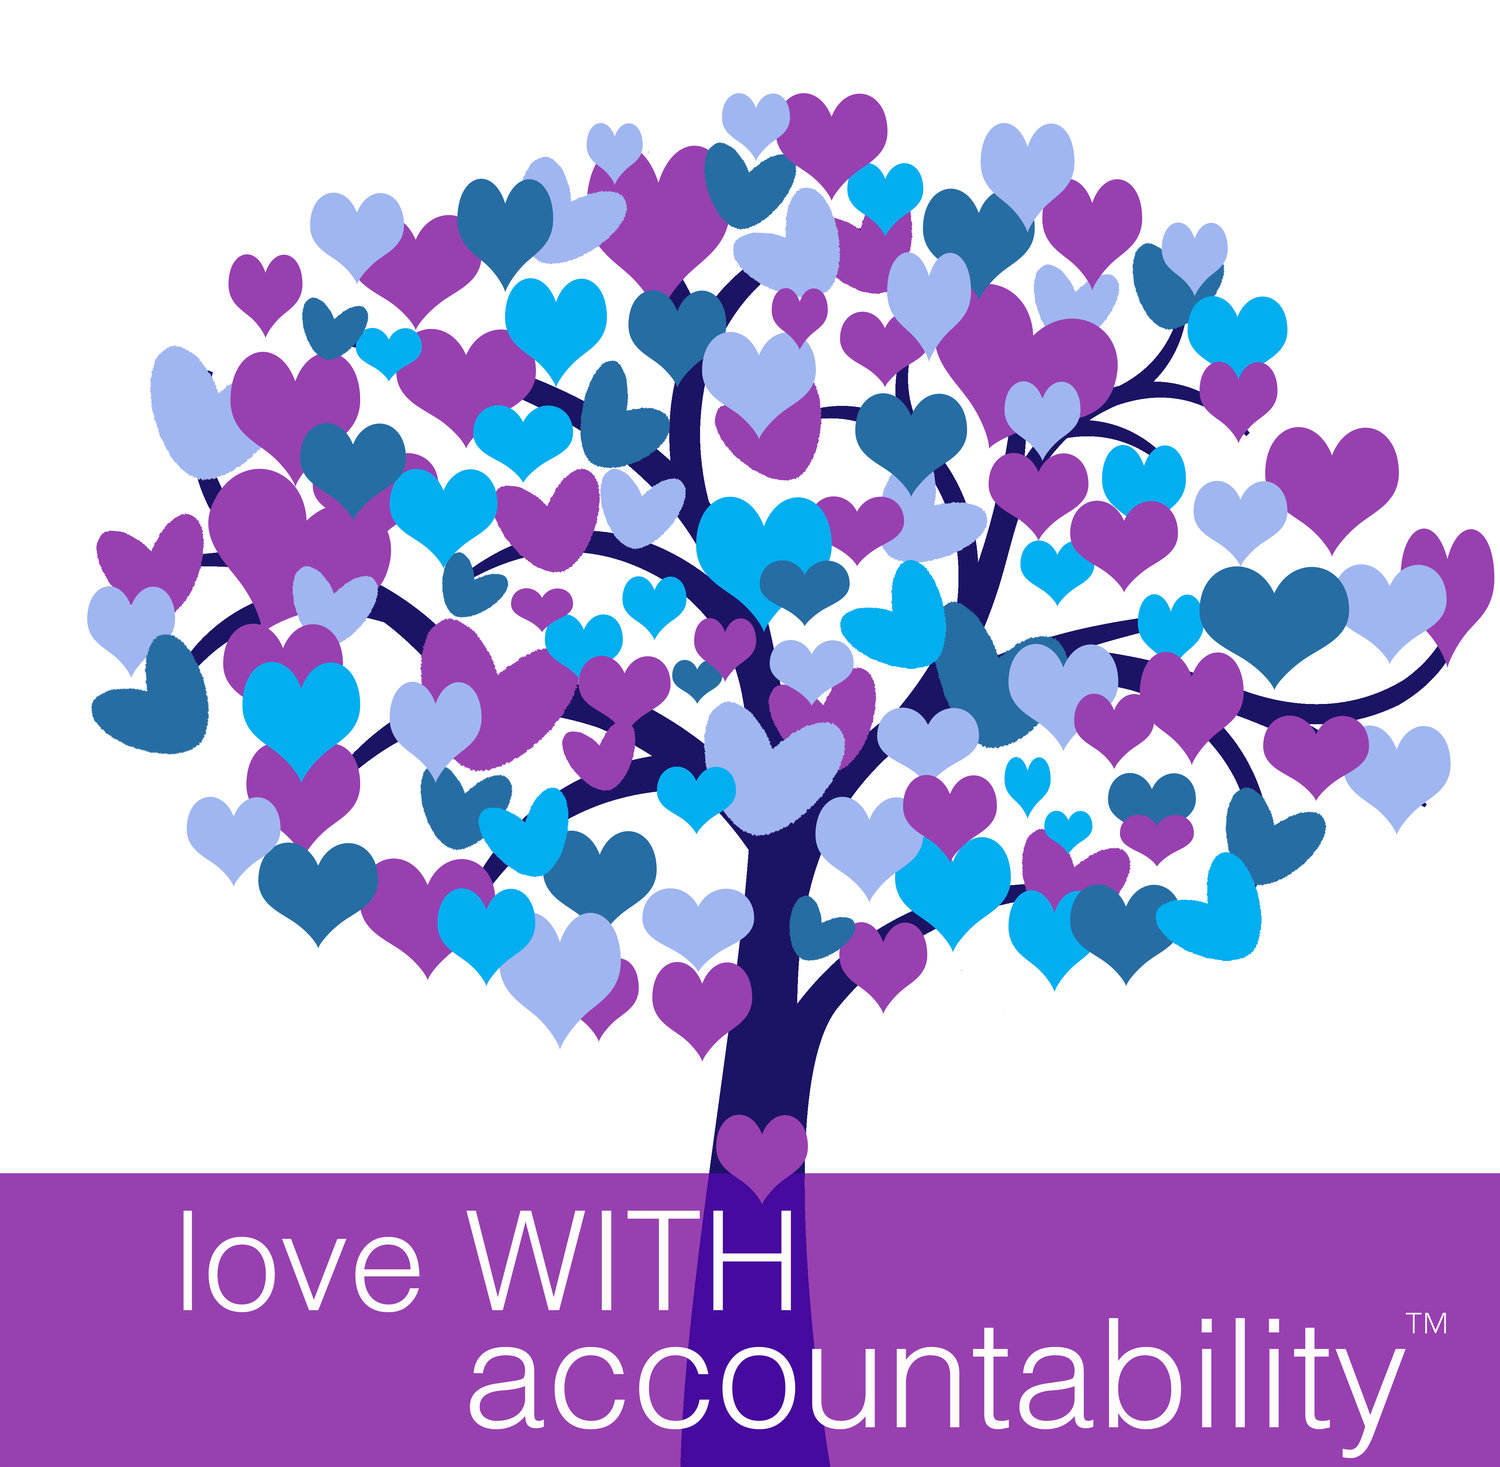 sexual abuse — #LoveWITHAccountability FORUM — loveWITHaccountability™